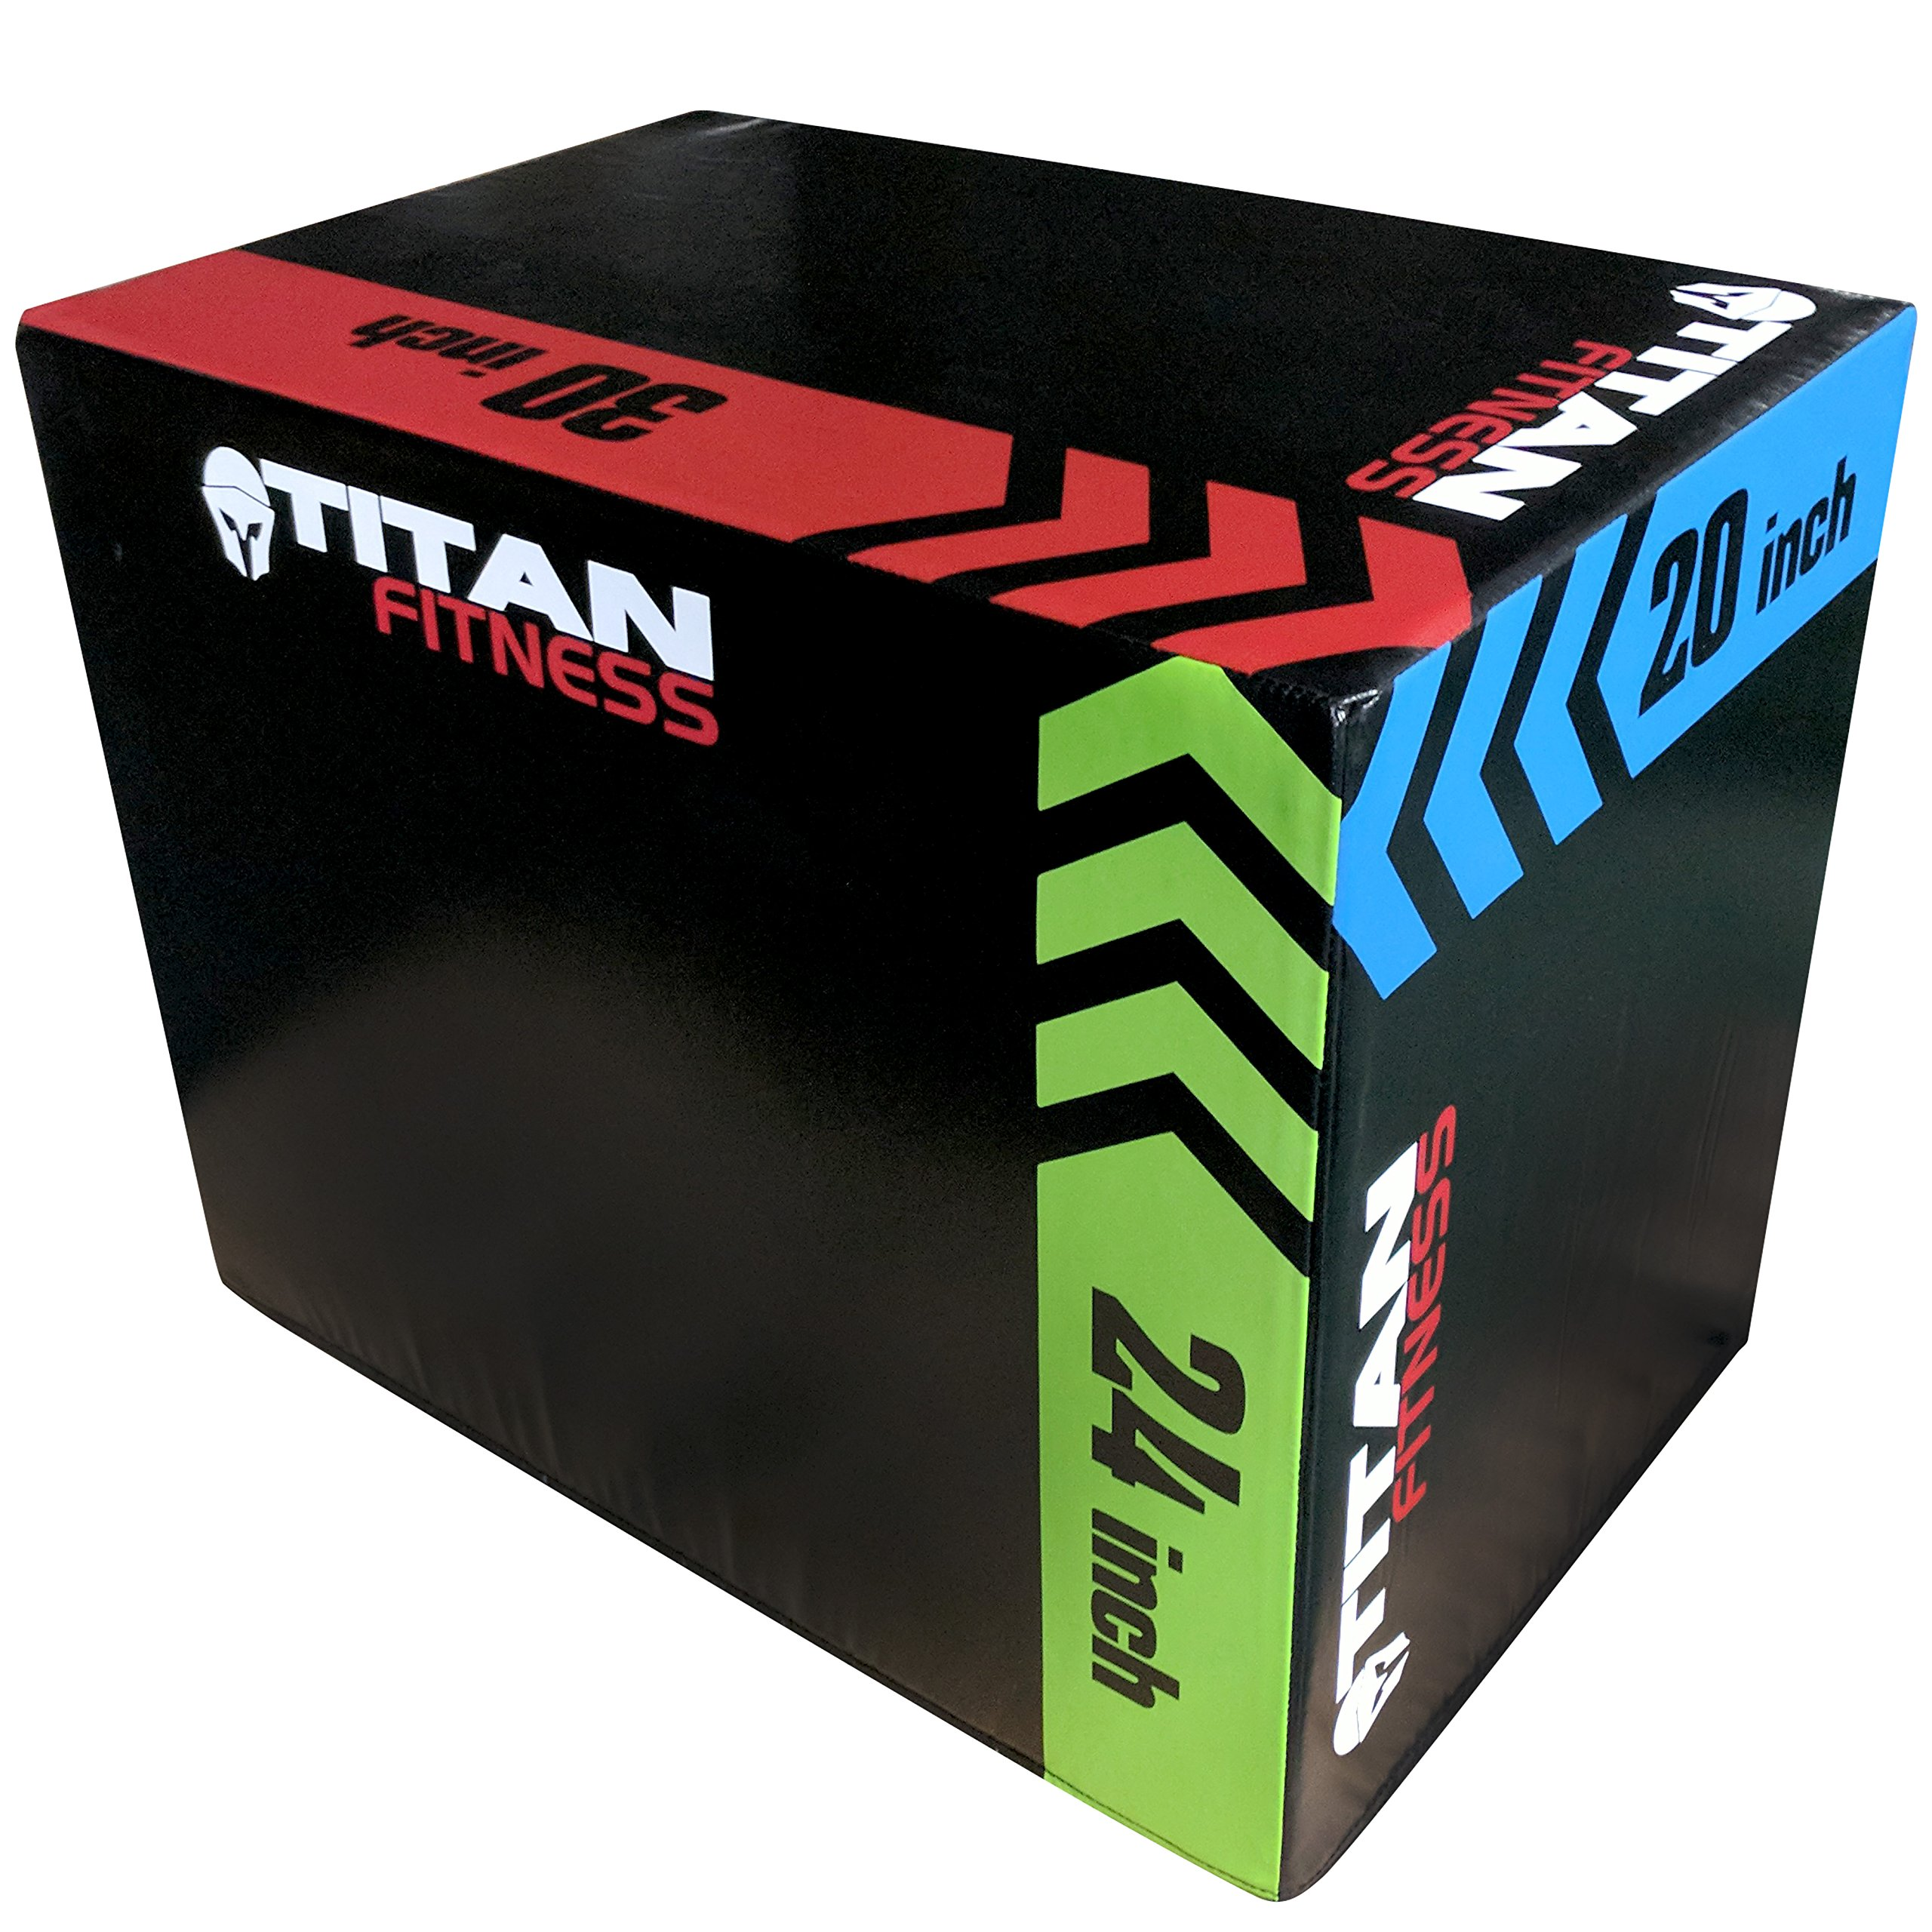 TITAN FITNESS 3-in-1 Portable Foam Plyometric Box, Jumping Exercise Equipment by TITAN FITNESS